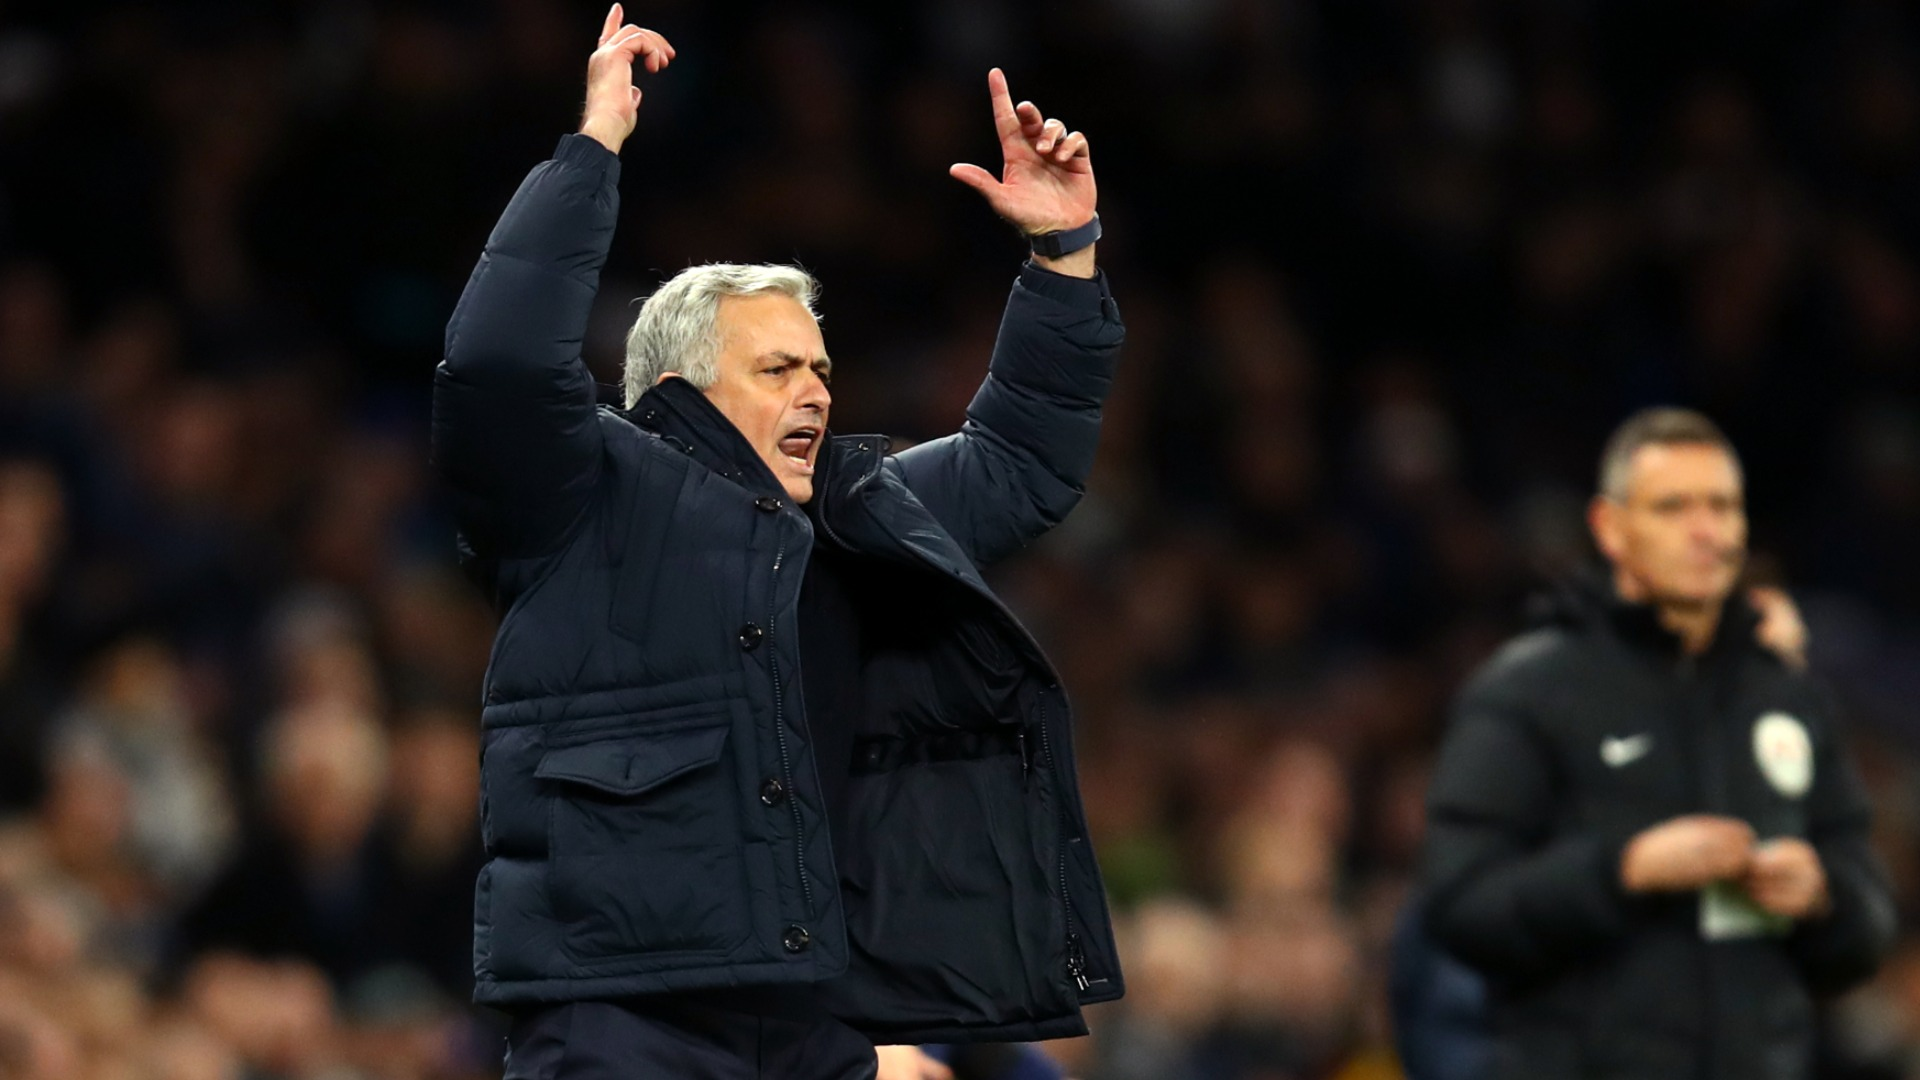 Chelsea wreck Mourinho's record against former clubs – the Premier League Data Diary